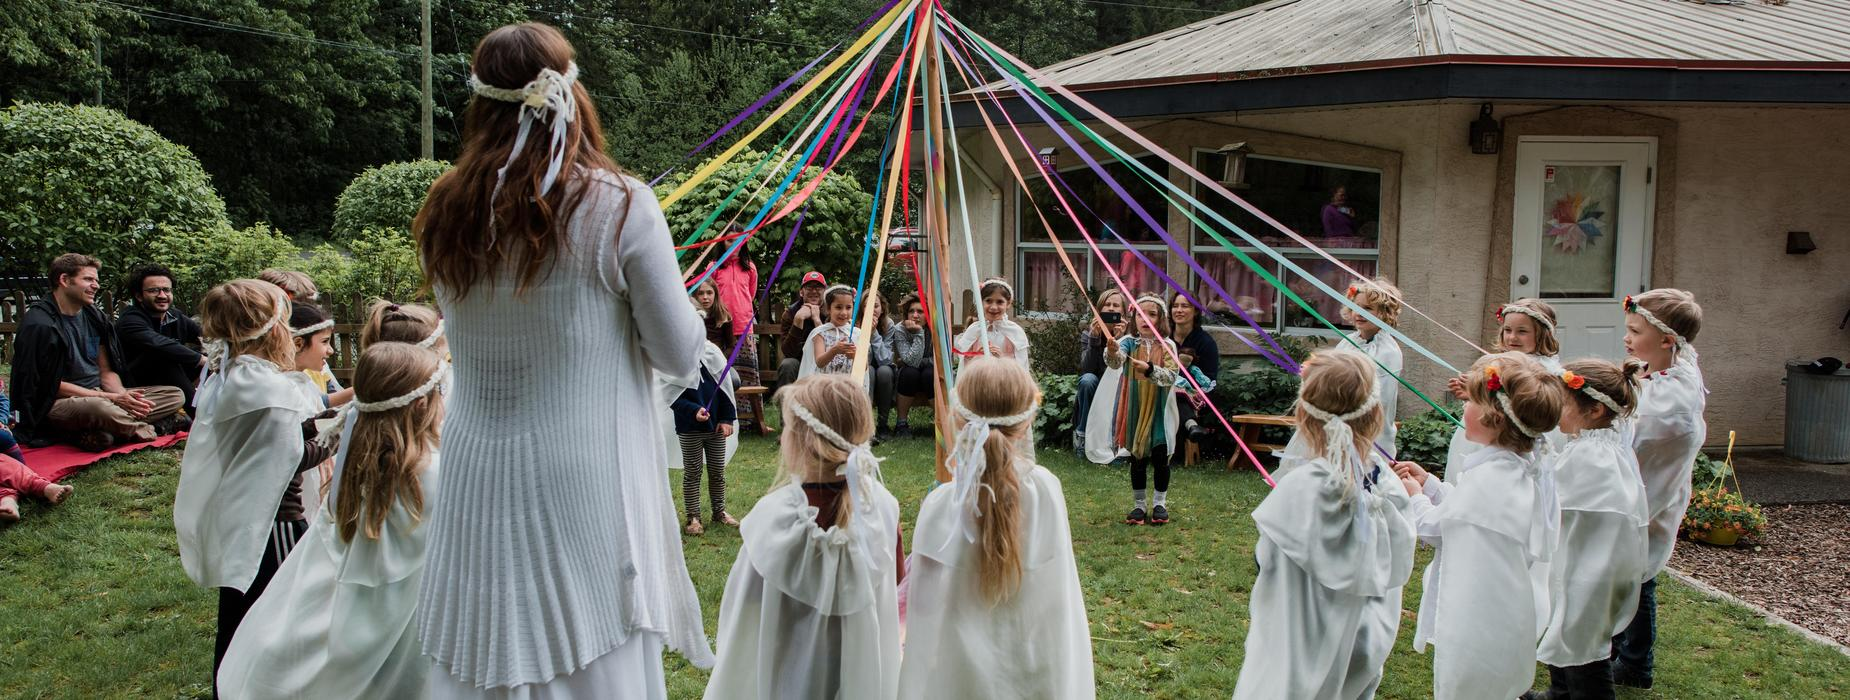 Children Maypole dancing